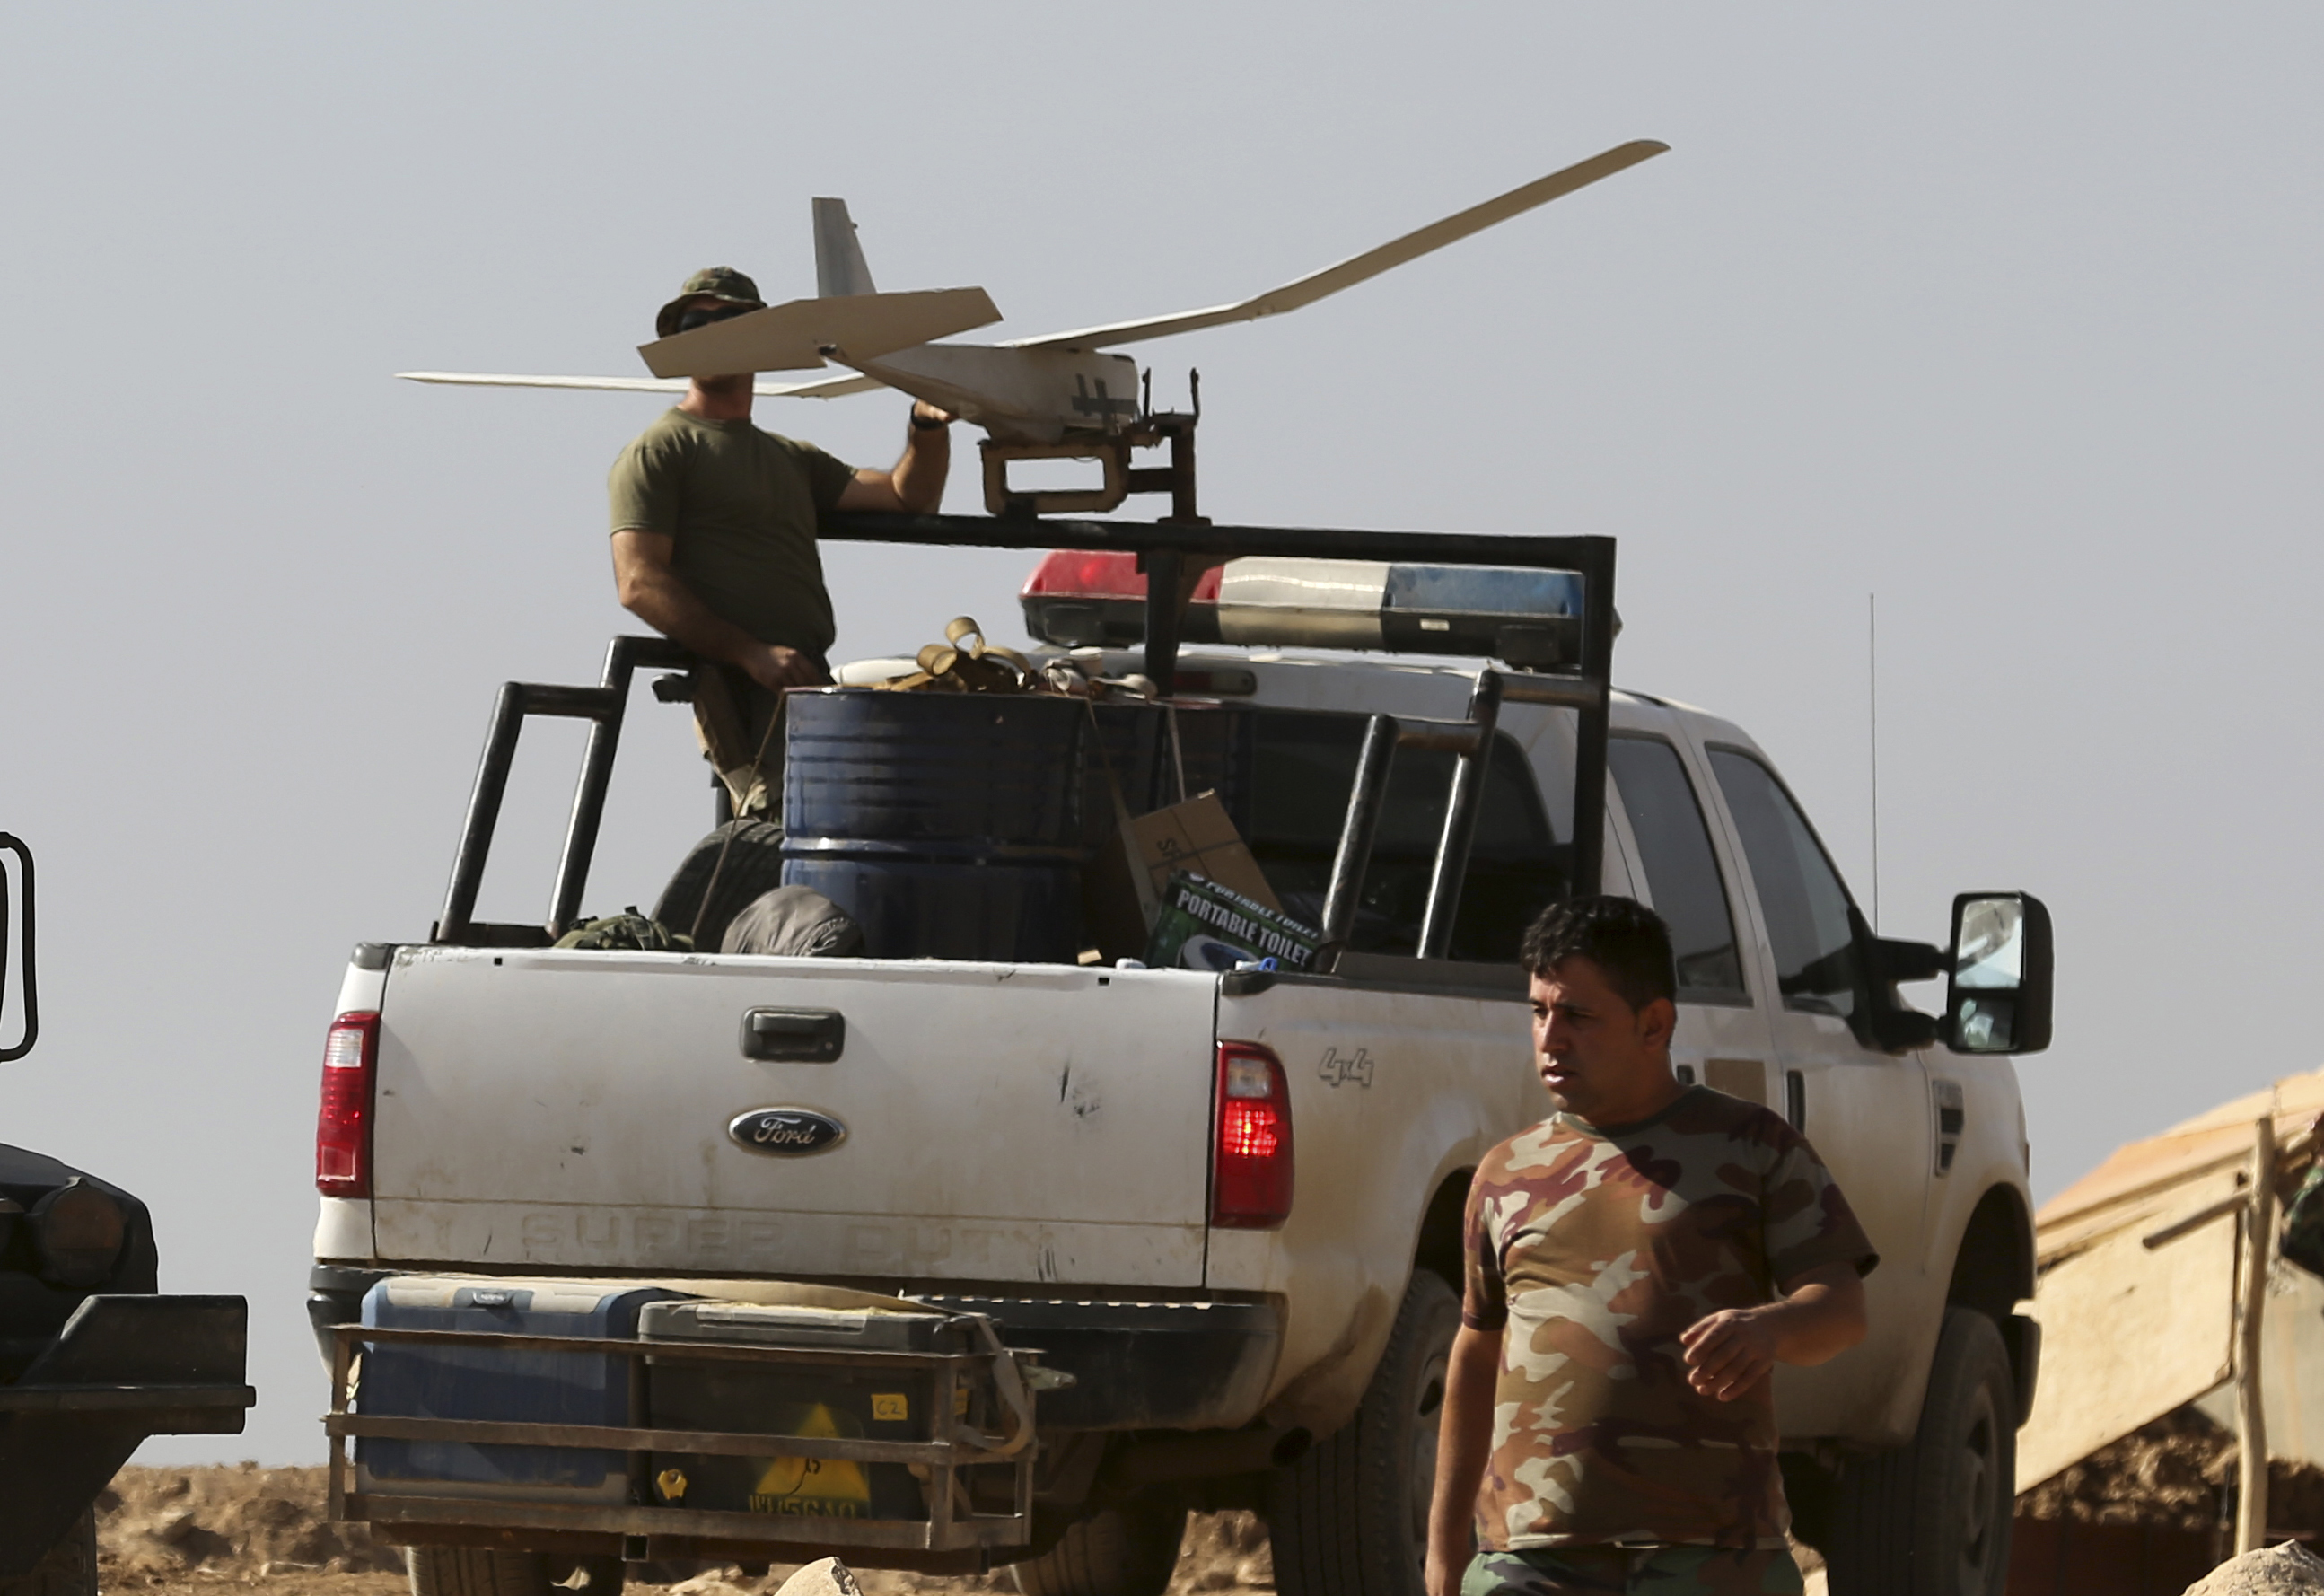 Iraq US-2 In this Friday, Oct. 21, 2016 photo, a U.S. soldier, left, prepares to launch a drone in a joint base with Iraqi army on the outskirts of Mosul, Iraq. Reverberations from President Donald Trump's travel ban and other stances are threatening to undermine future U.S.-Iraqi security cooperation, rattling a key alliance that over the past two years has slowly beaten back the Islamic State group. Iraq's prime minister, Haider al-Abadi, has sought to contain public anger sparked by the ban and by Trump's repeated statements that the Americans should have taken Iraq's oil, as well as his hard line against Iran, a close ally of Baghdad. (AP Photo/Khalid Mohammed)